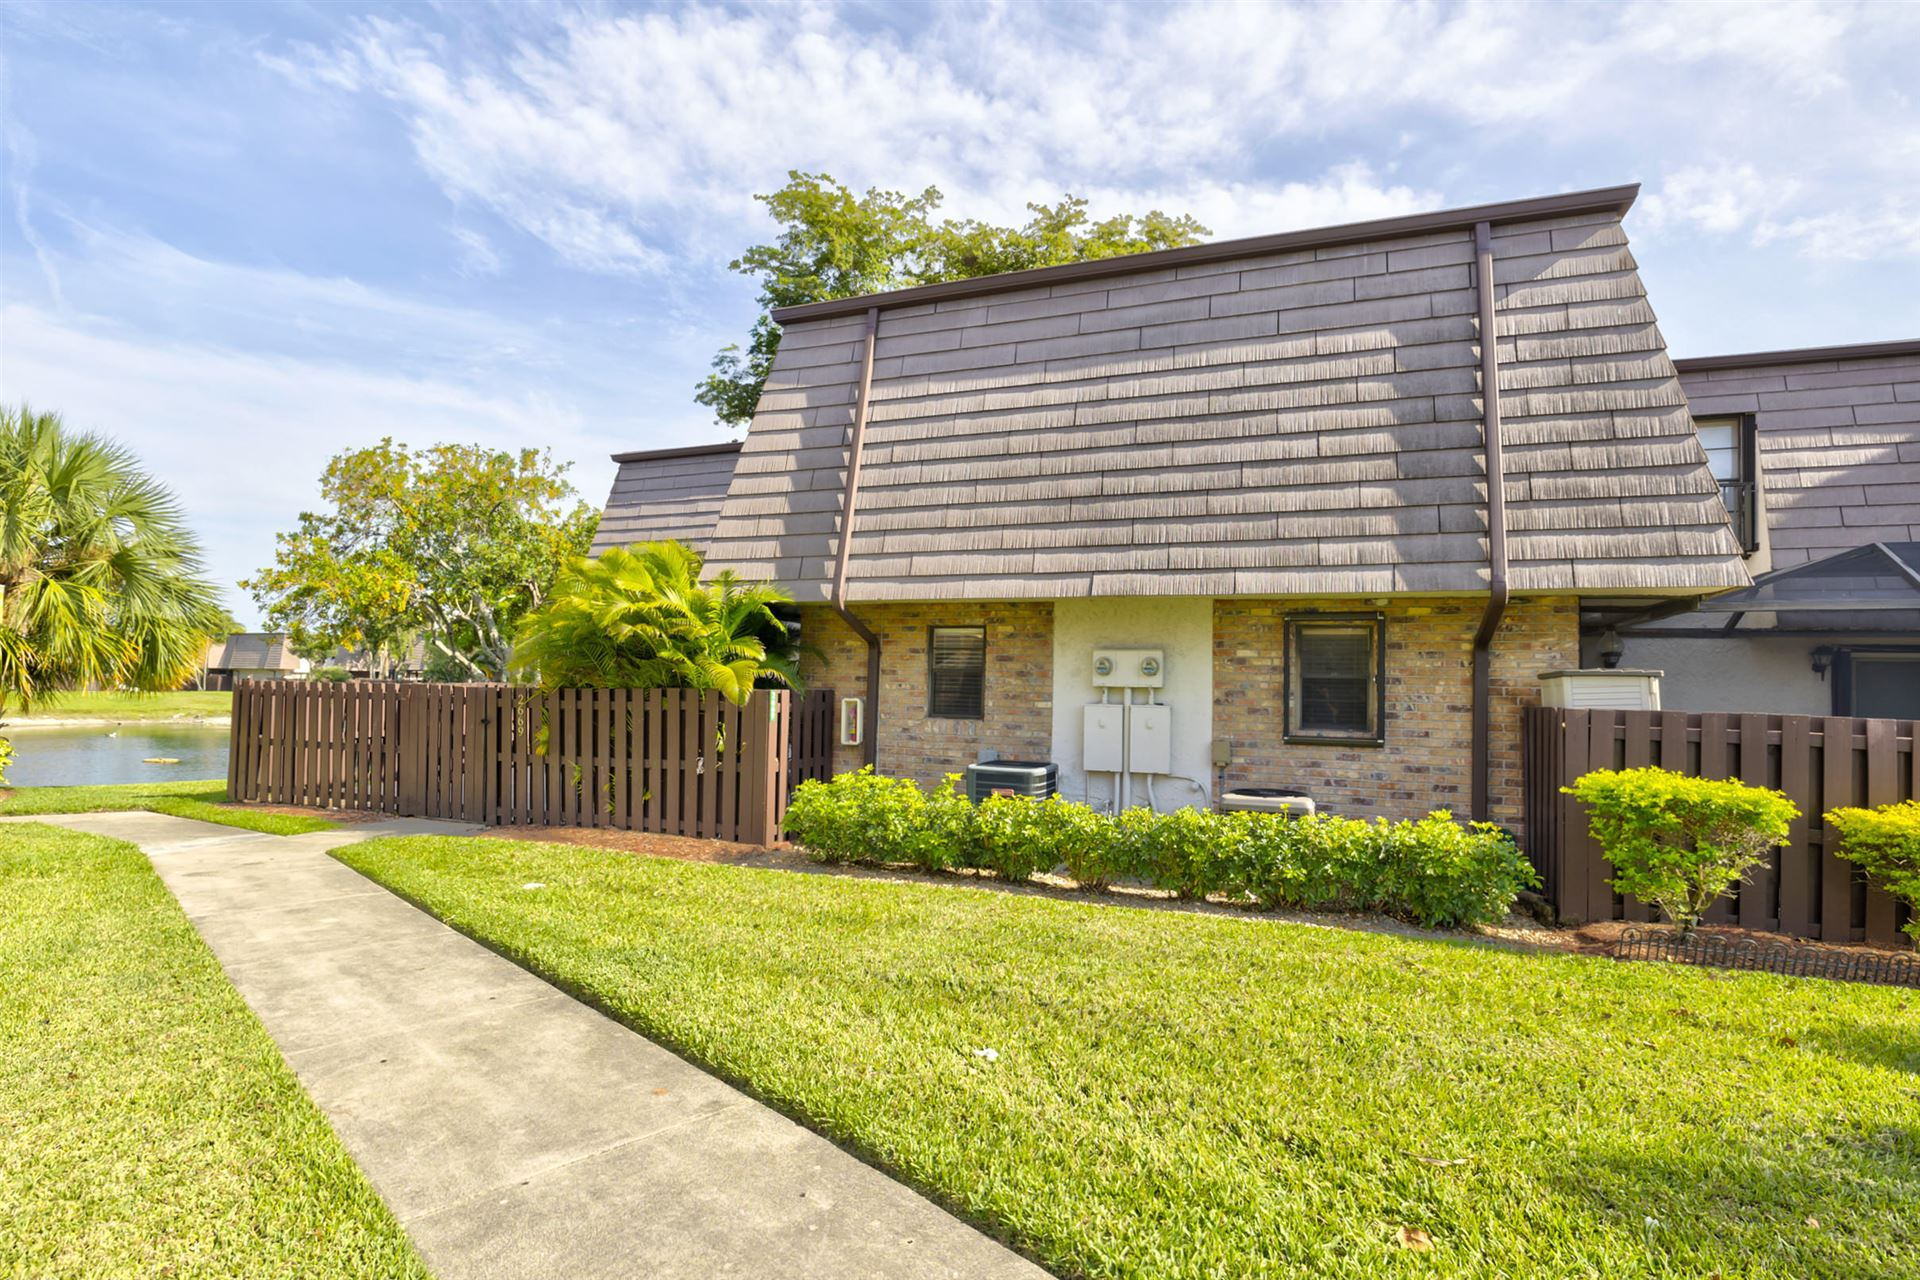 Photo of 2669 NW 99th Avenue, Coral Springs, FL 33065 (MLS # RX-10712431)